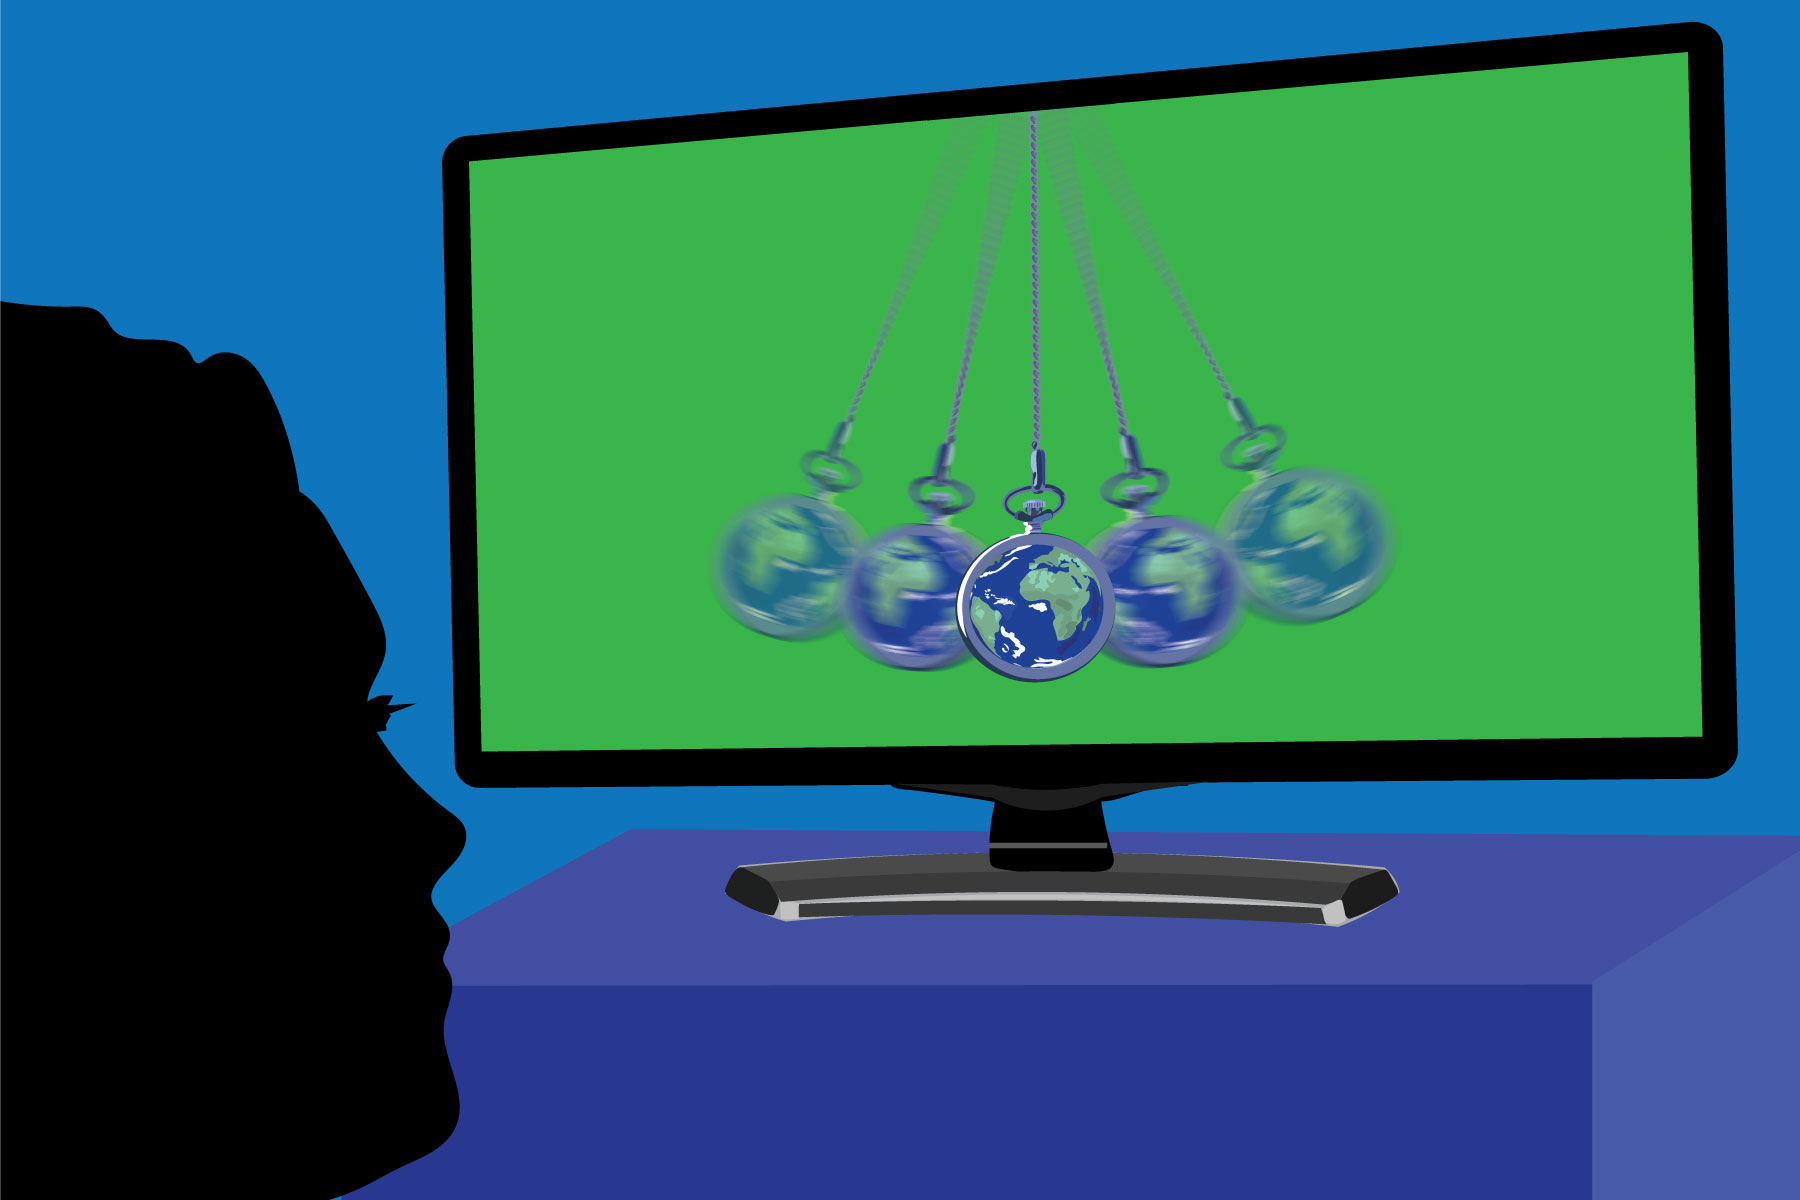 In an article about greenwashing, a green TV screen hypnotizing a viewer.